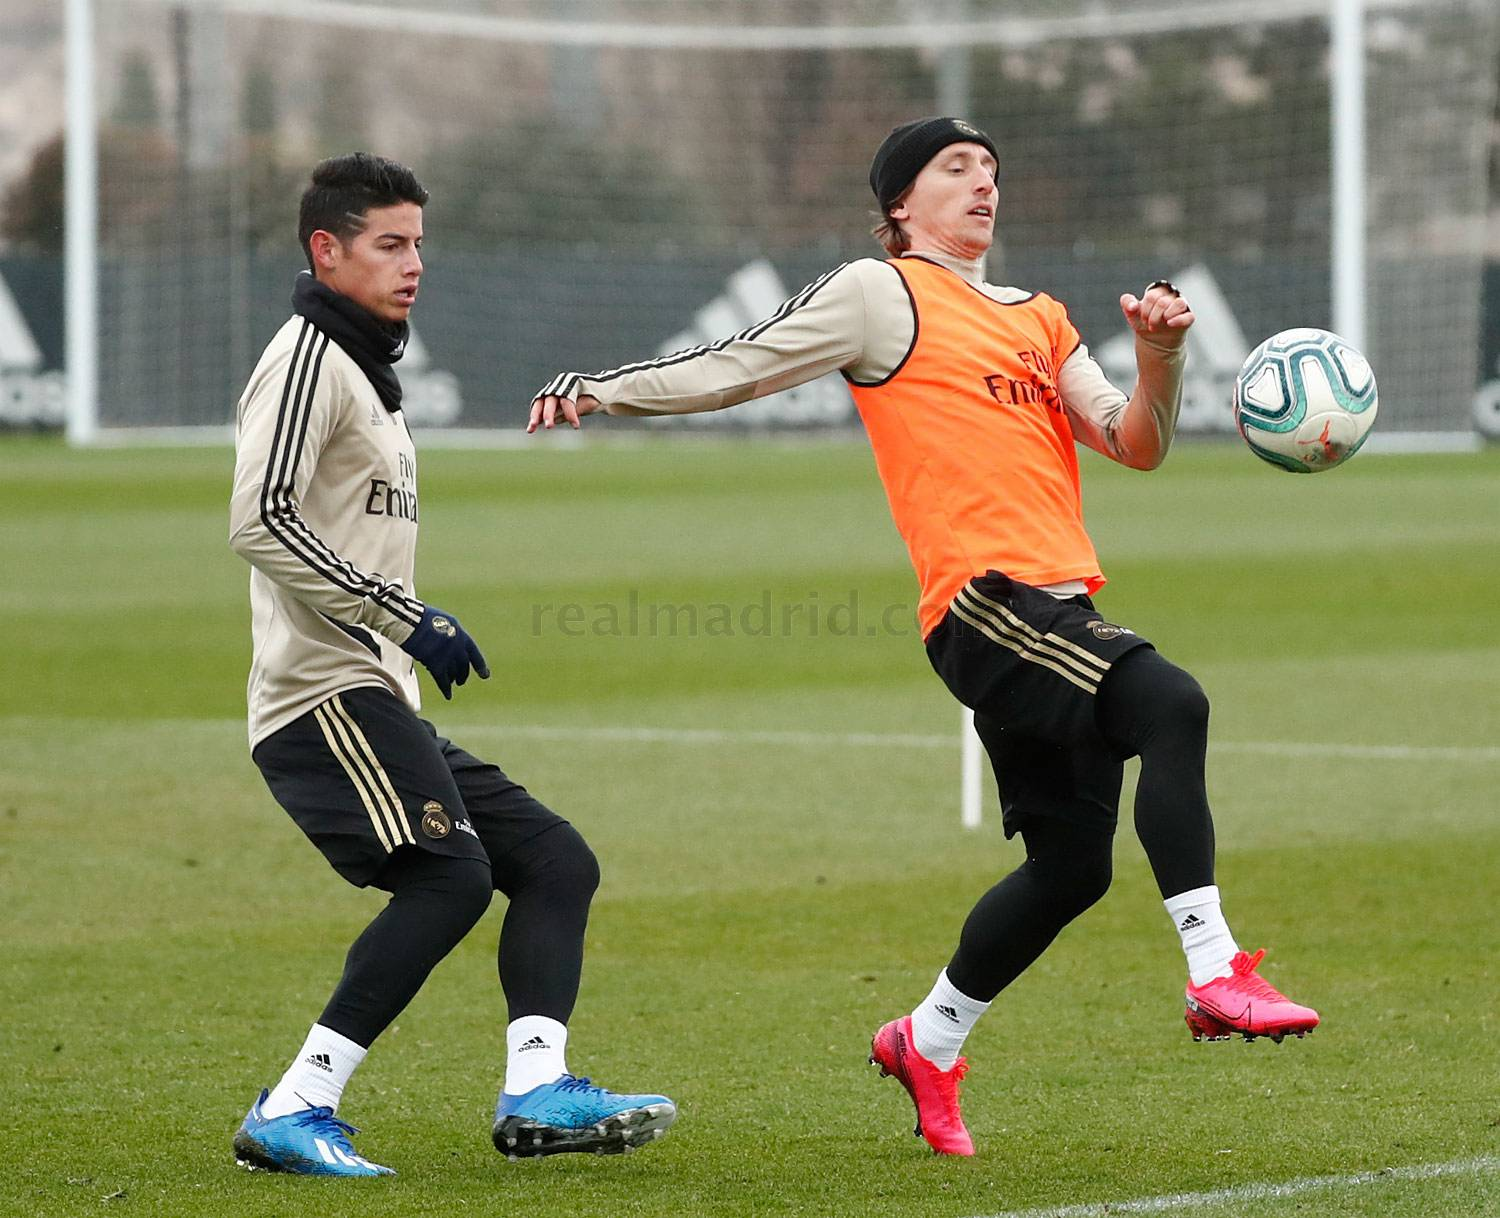 Real Madrid - Entrenamiento del Real Madrid  - 24-01-2020